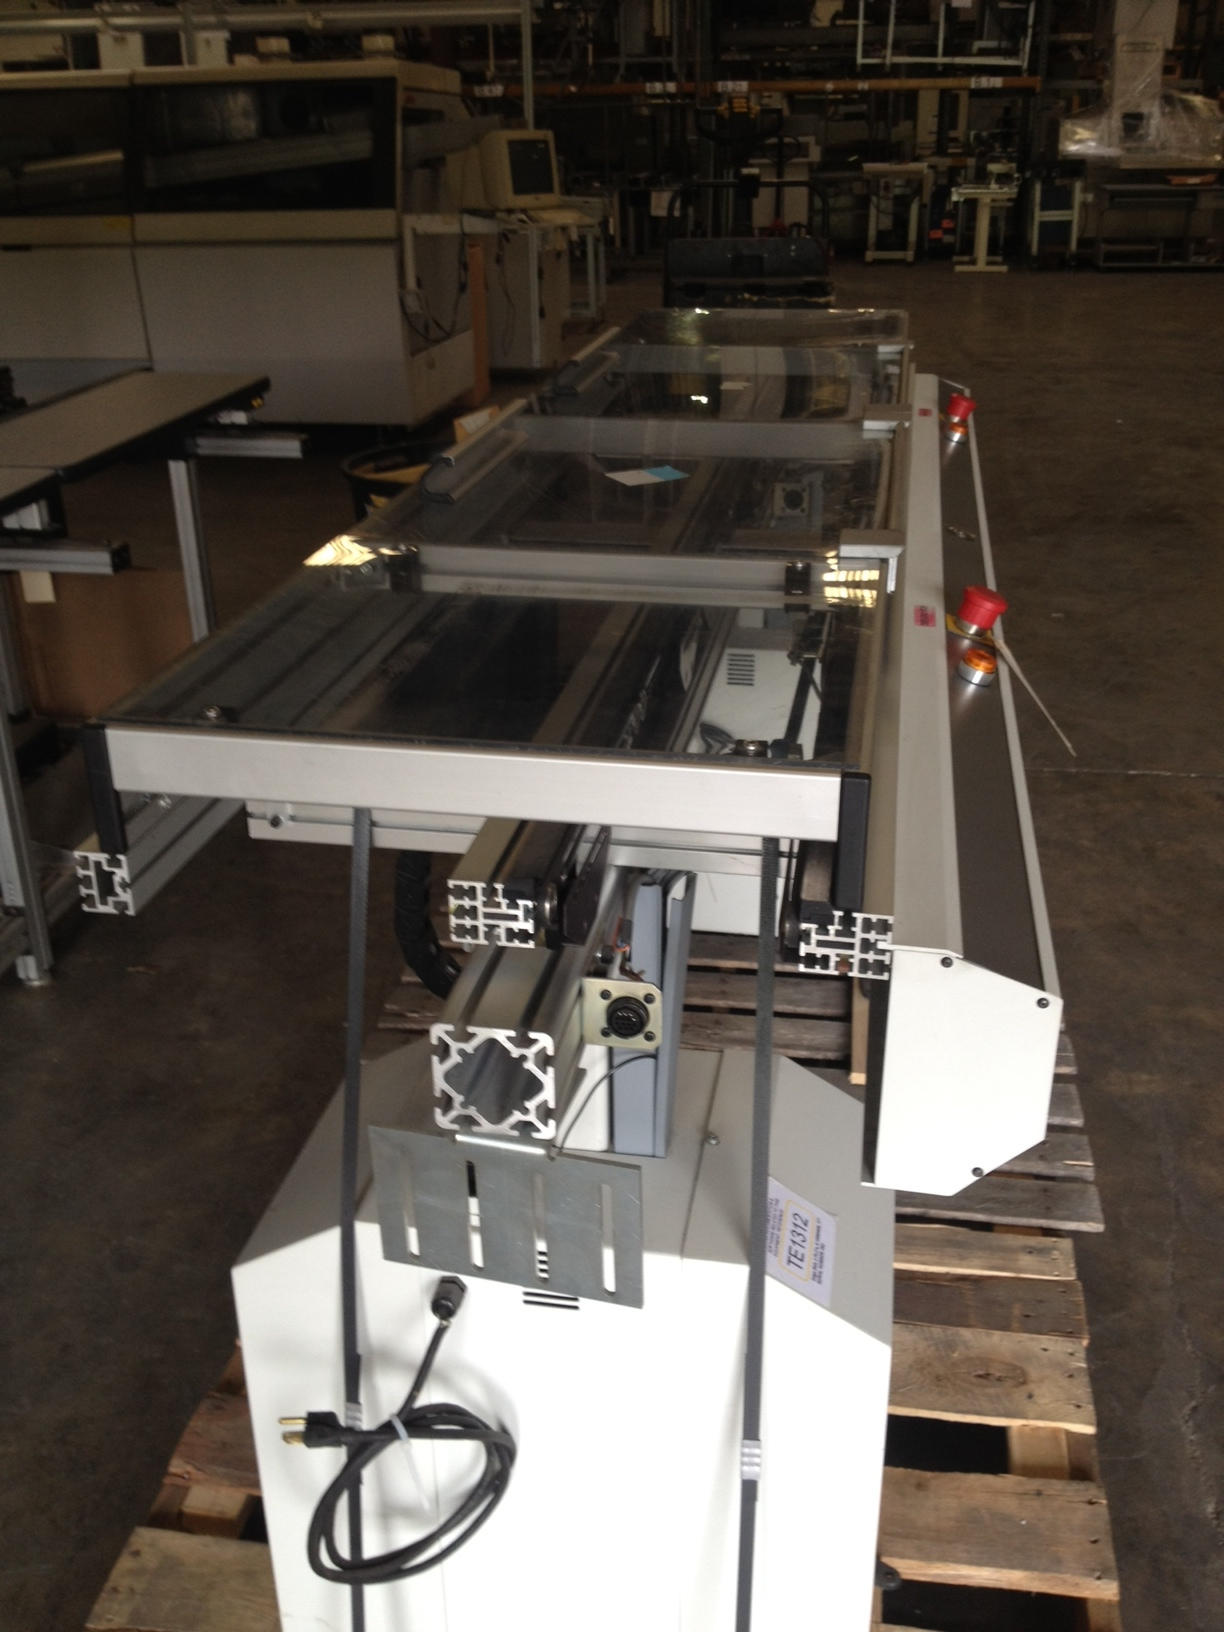 Almost new UNIVERSAL 5362i CONVEYORS